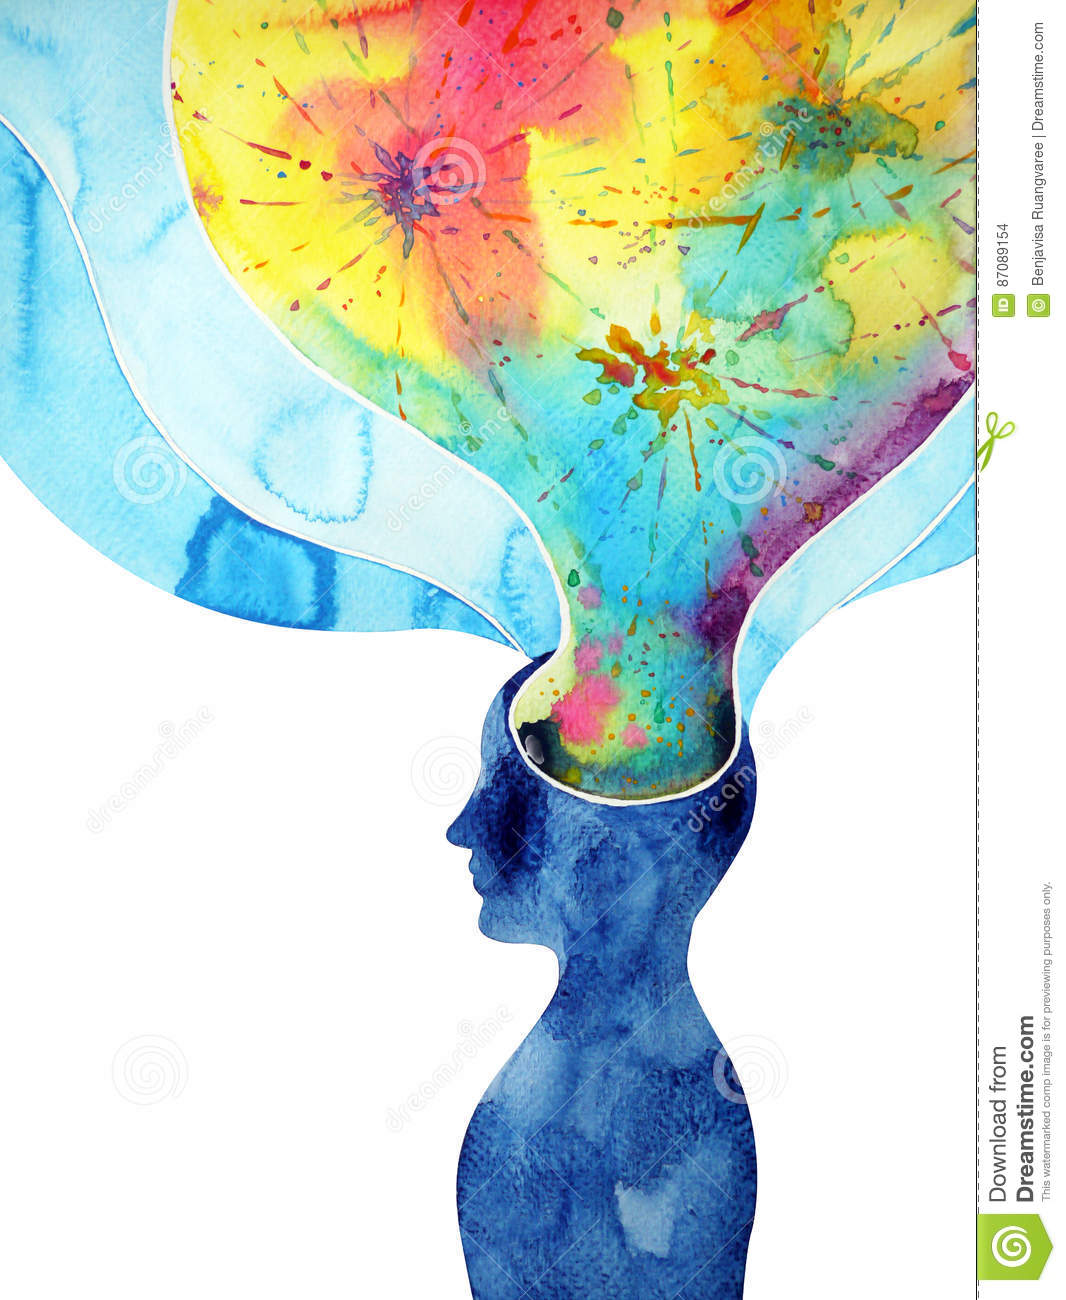 Human head, chakra power, inspiration abstract thinking thought